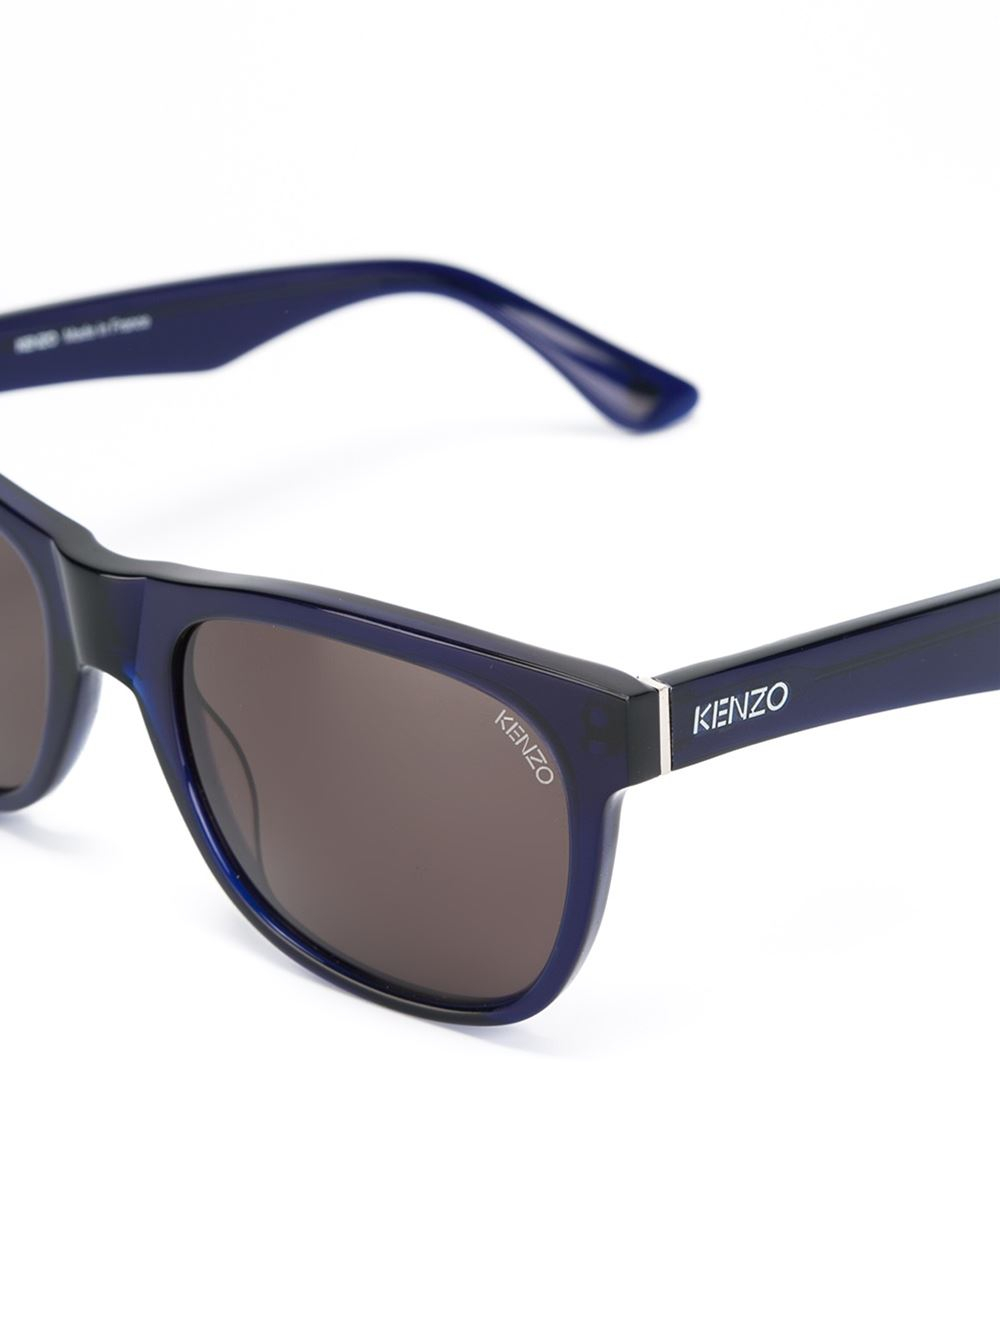 Sale Latest Collections Cheap Ebay Kenzo square frame sunglasses Collections 6hS5rVq3h